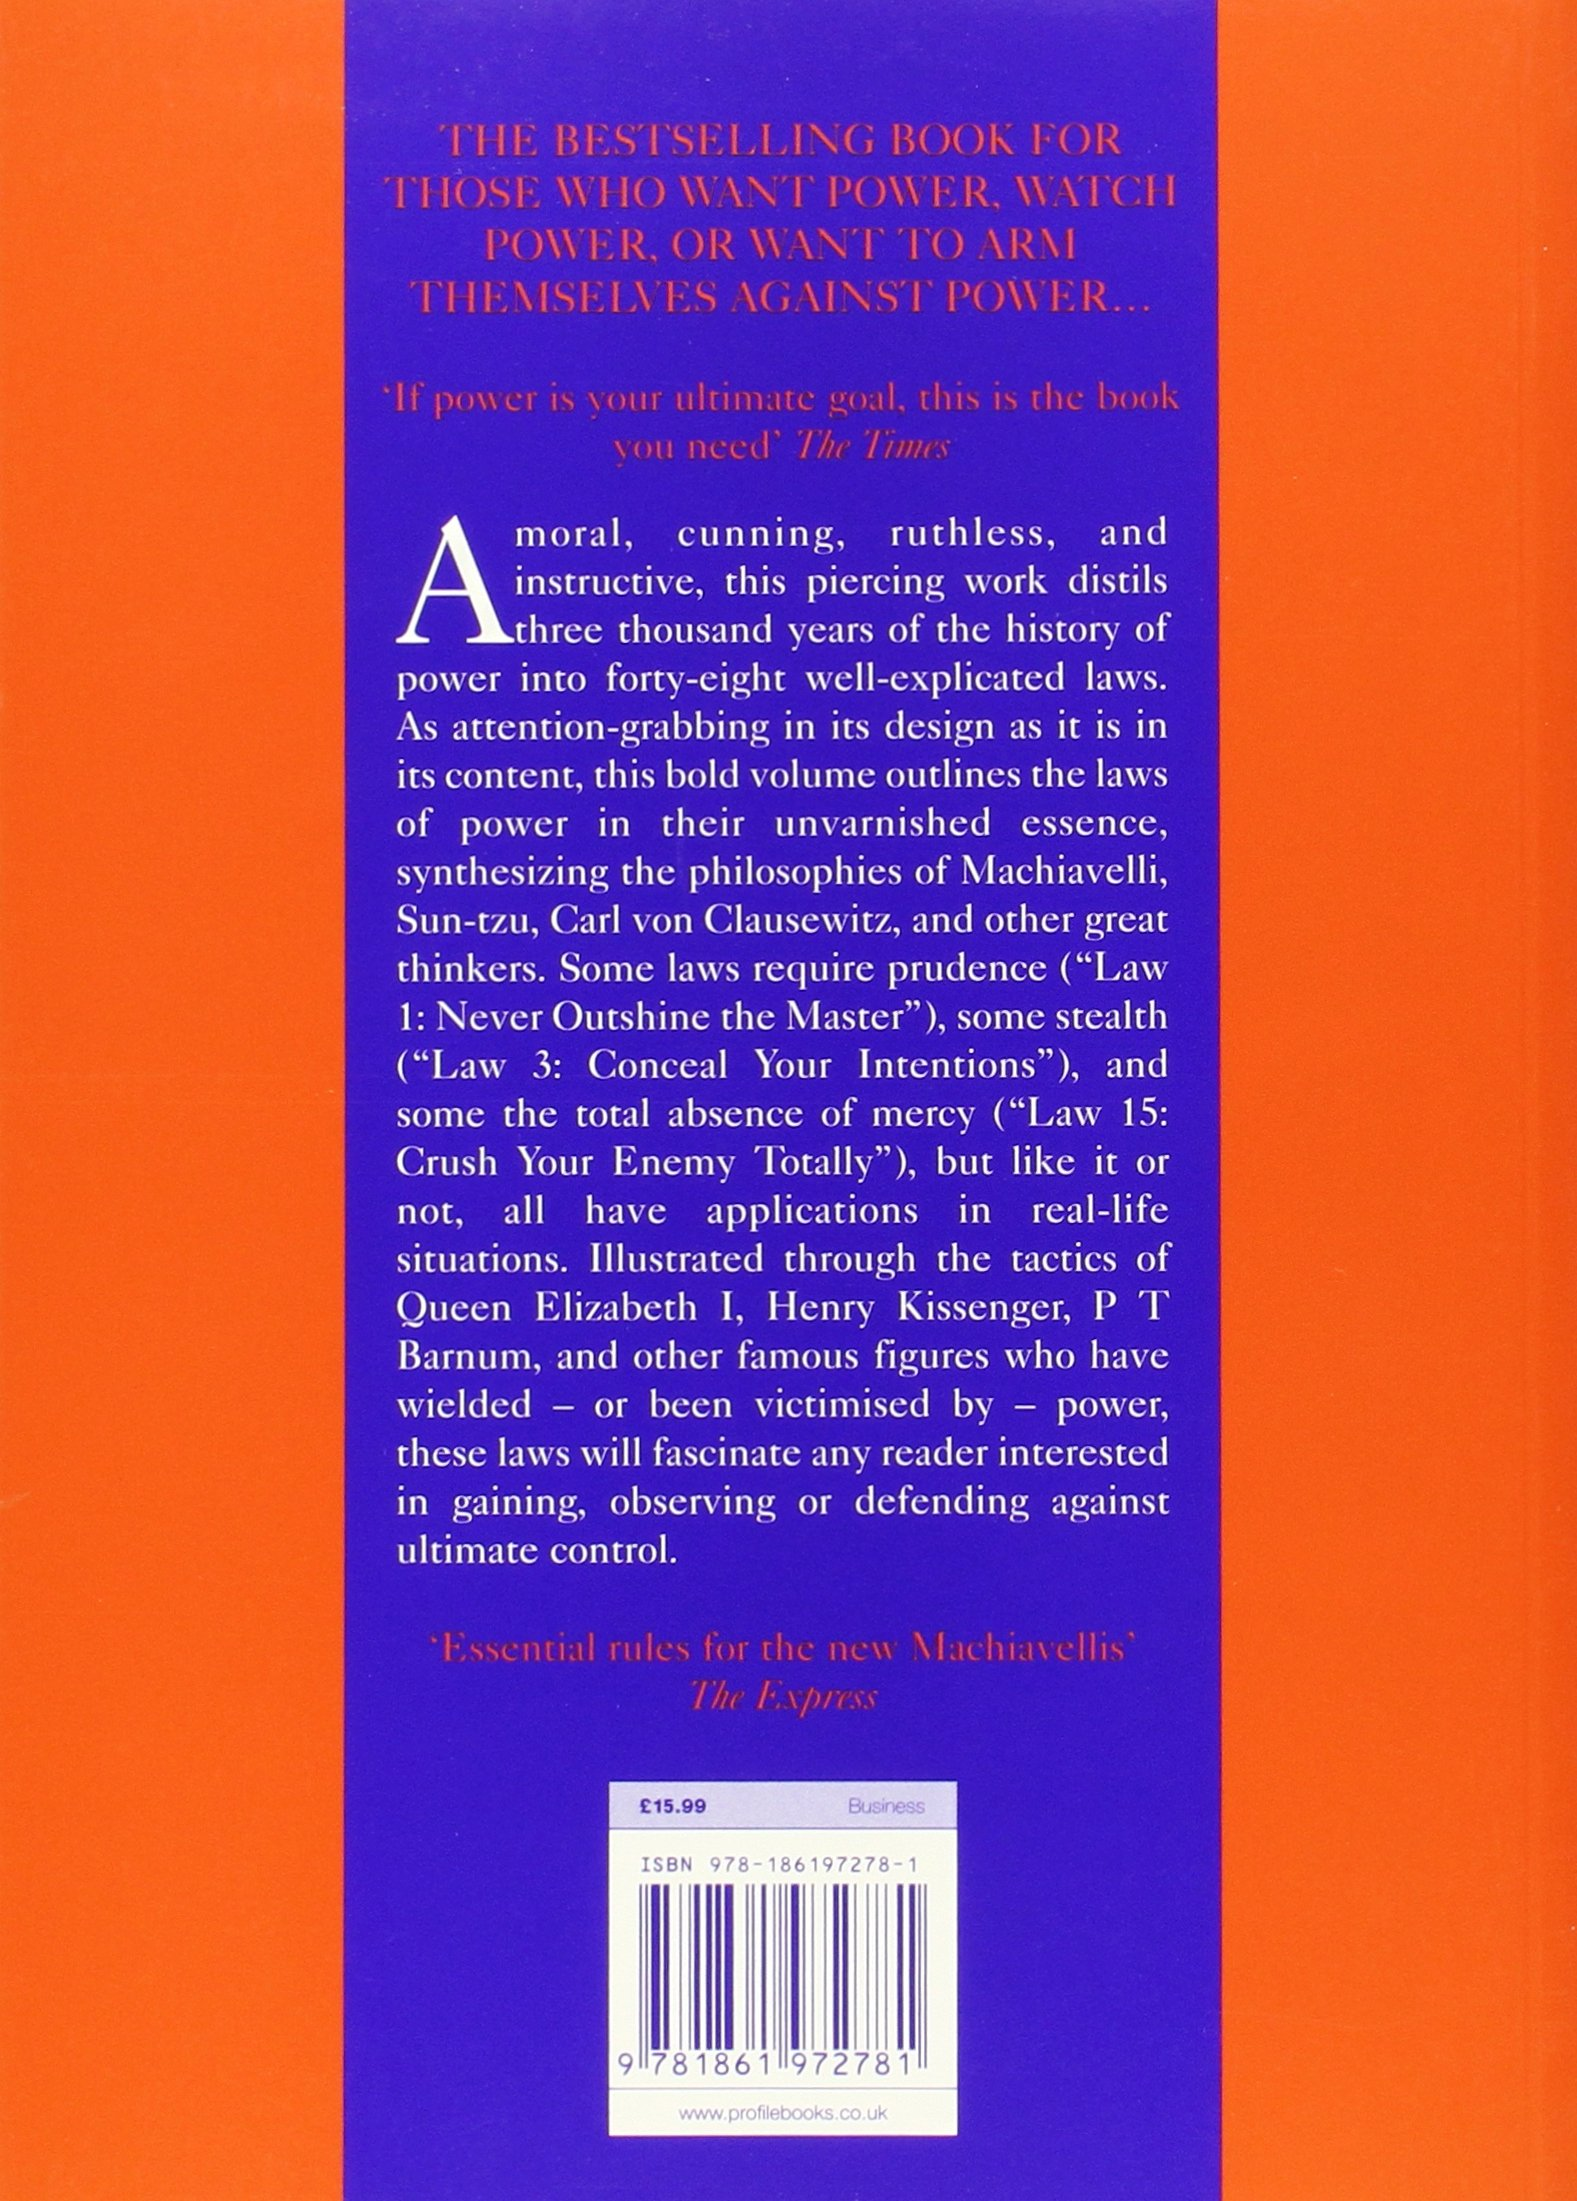 Buy The 48 Laws Of Power Robert Greene Collection Book Online At Low Prices In India